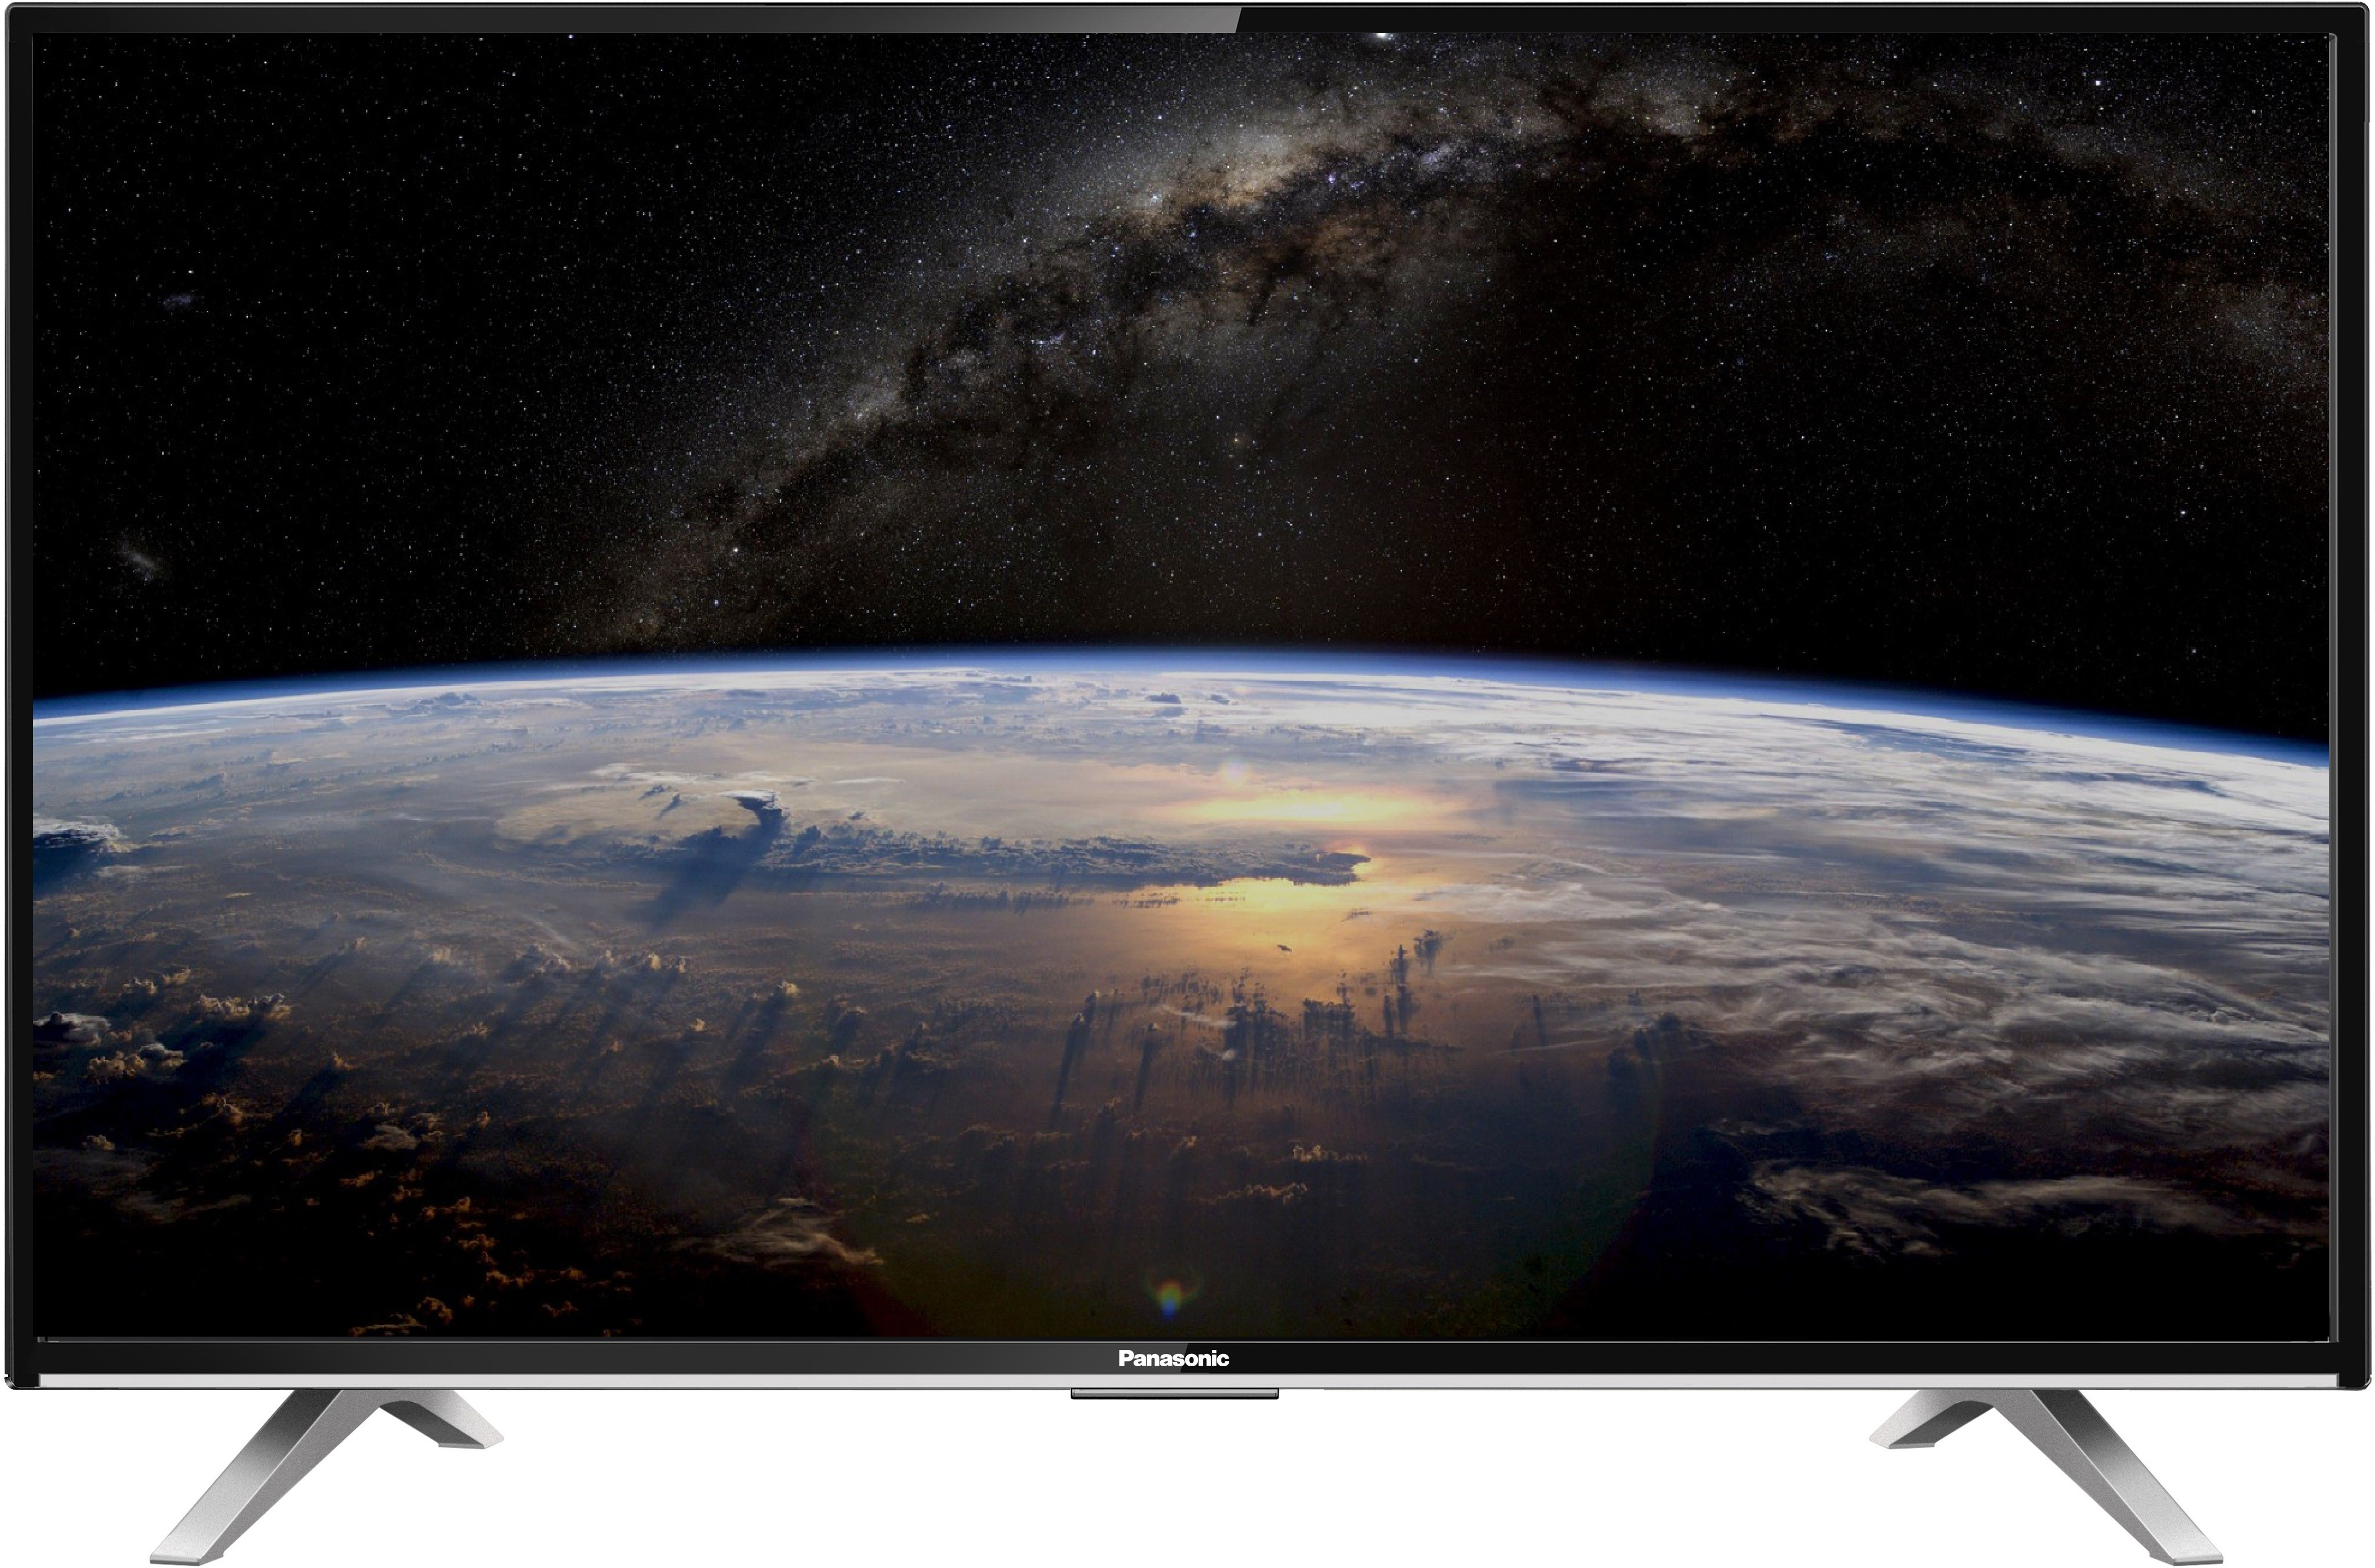 PANASONIC TH 50C300DX 50 Inches Full HD LED TV Price In